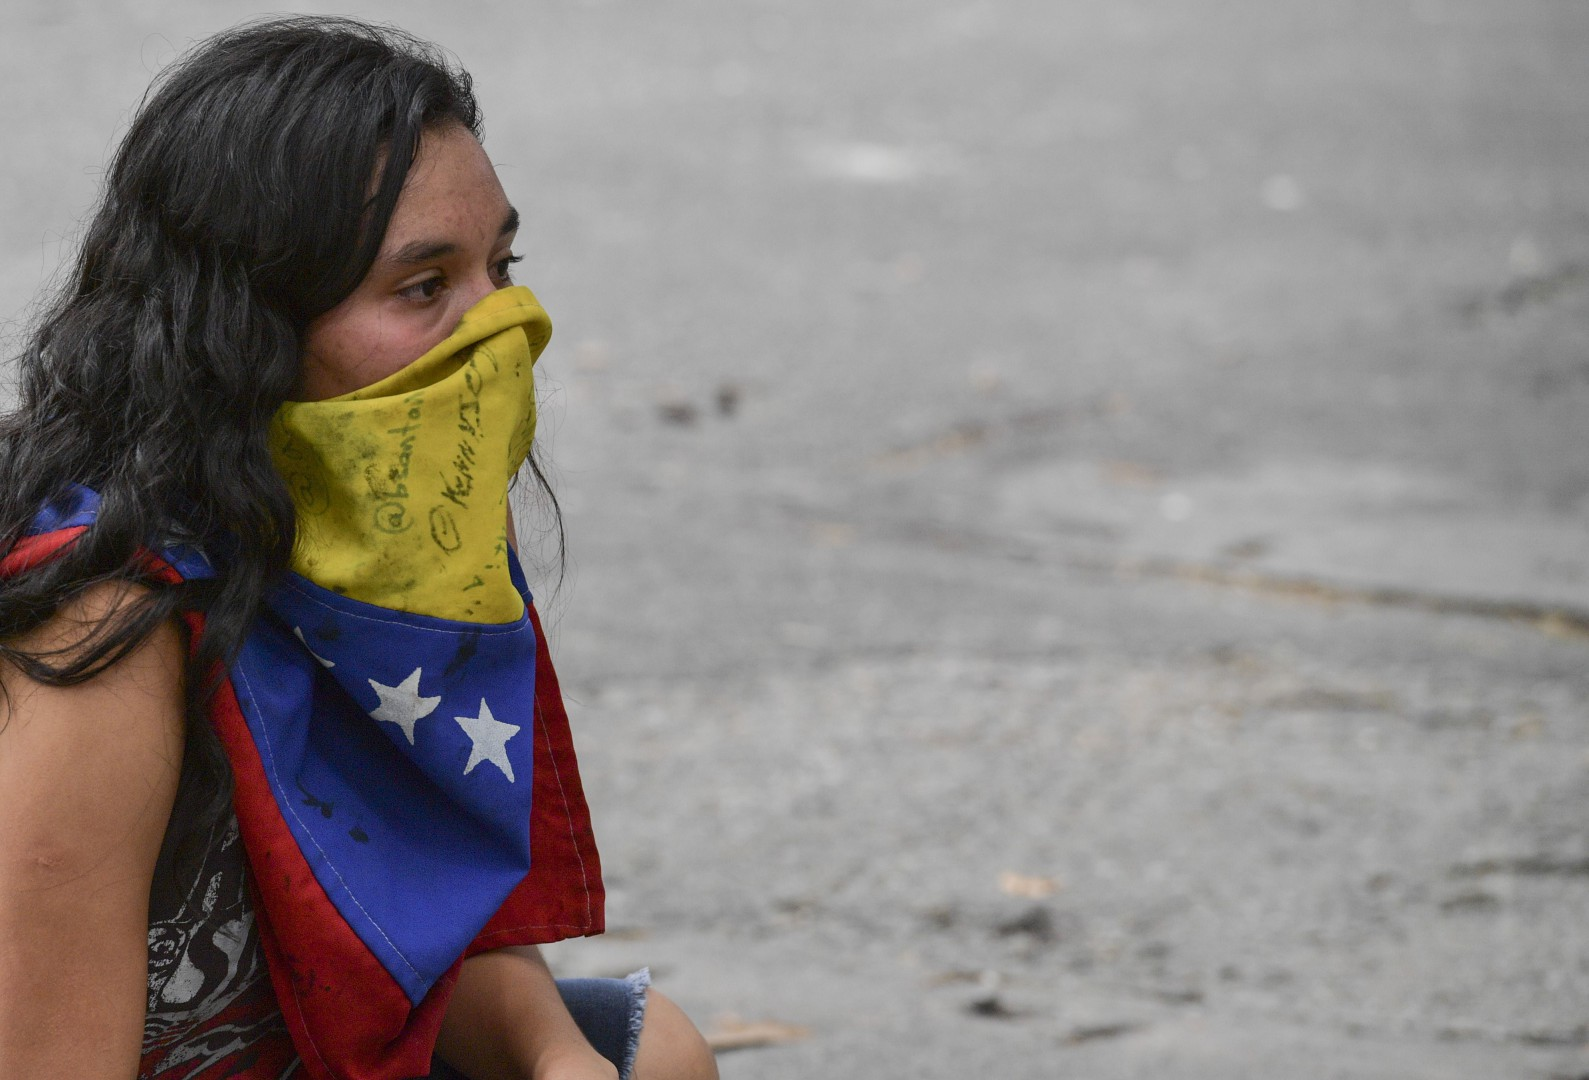 A student of the Caracas' Central University is pictured during clashes with riot police, in the framework of a demonstration marking the University Student Day in Caracas, on November 21, 2018. (Photo by YURI CORTEZ / AFP)